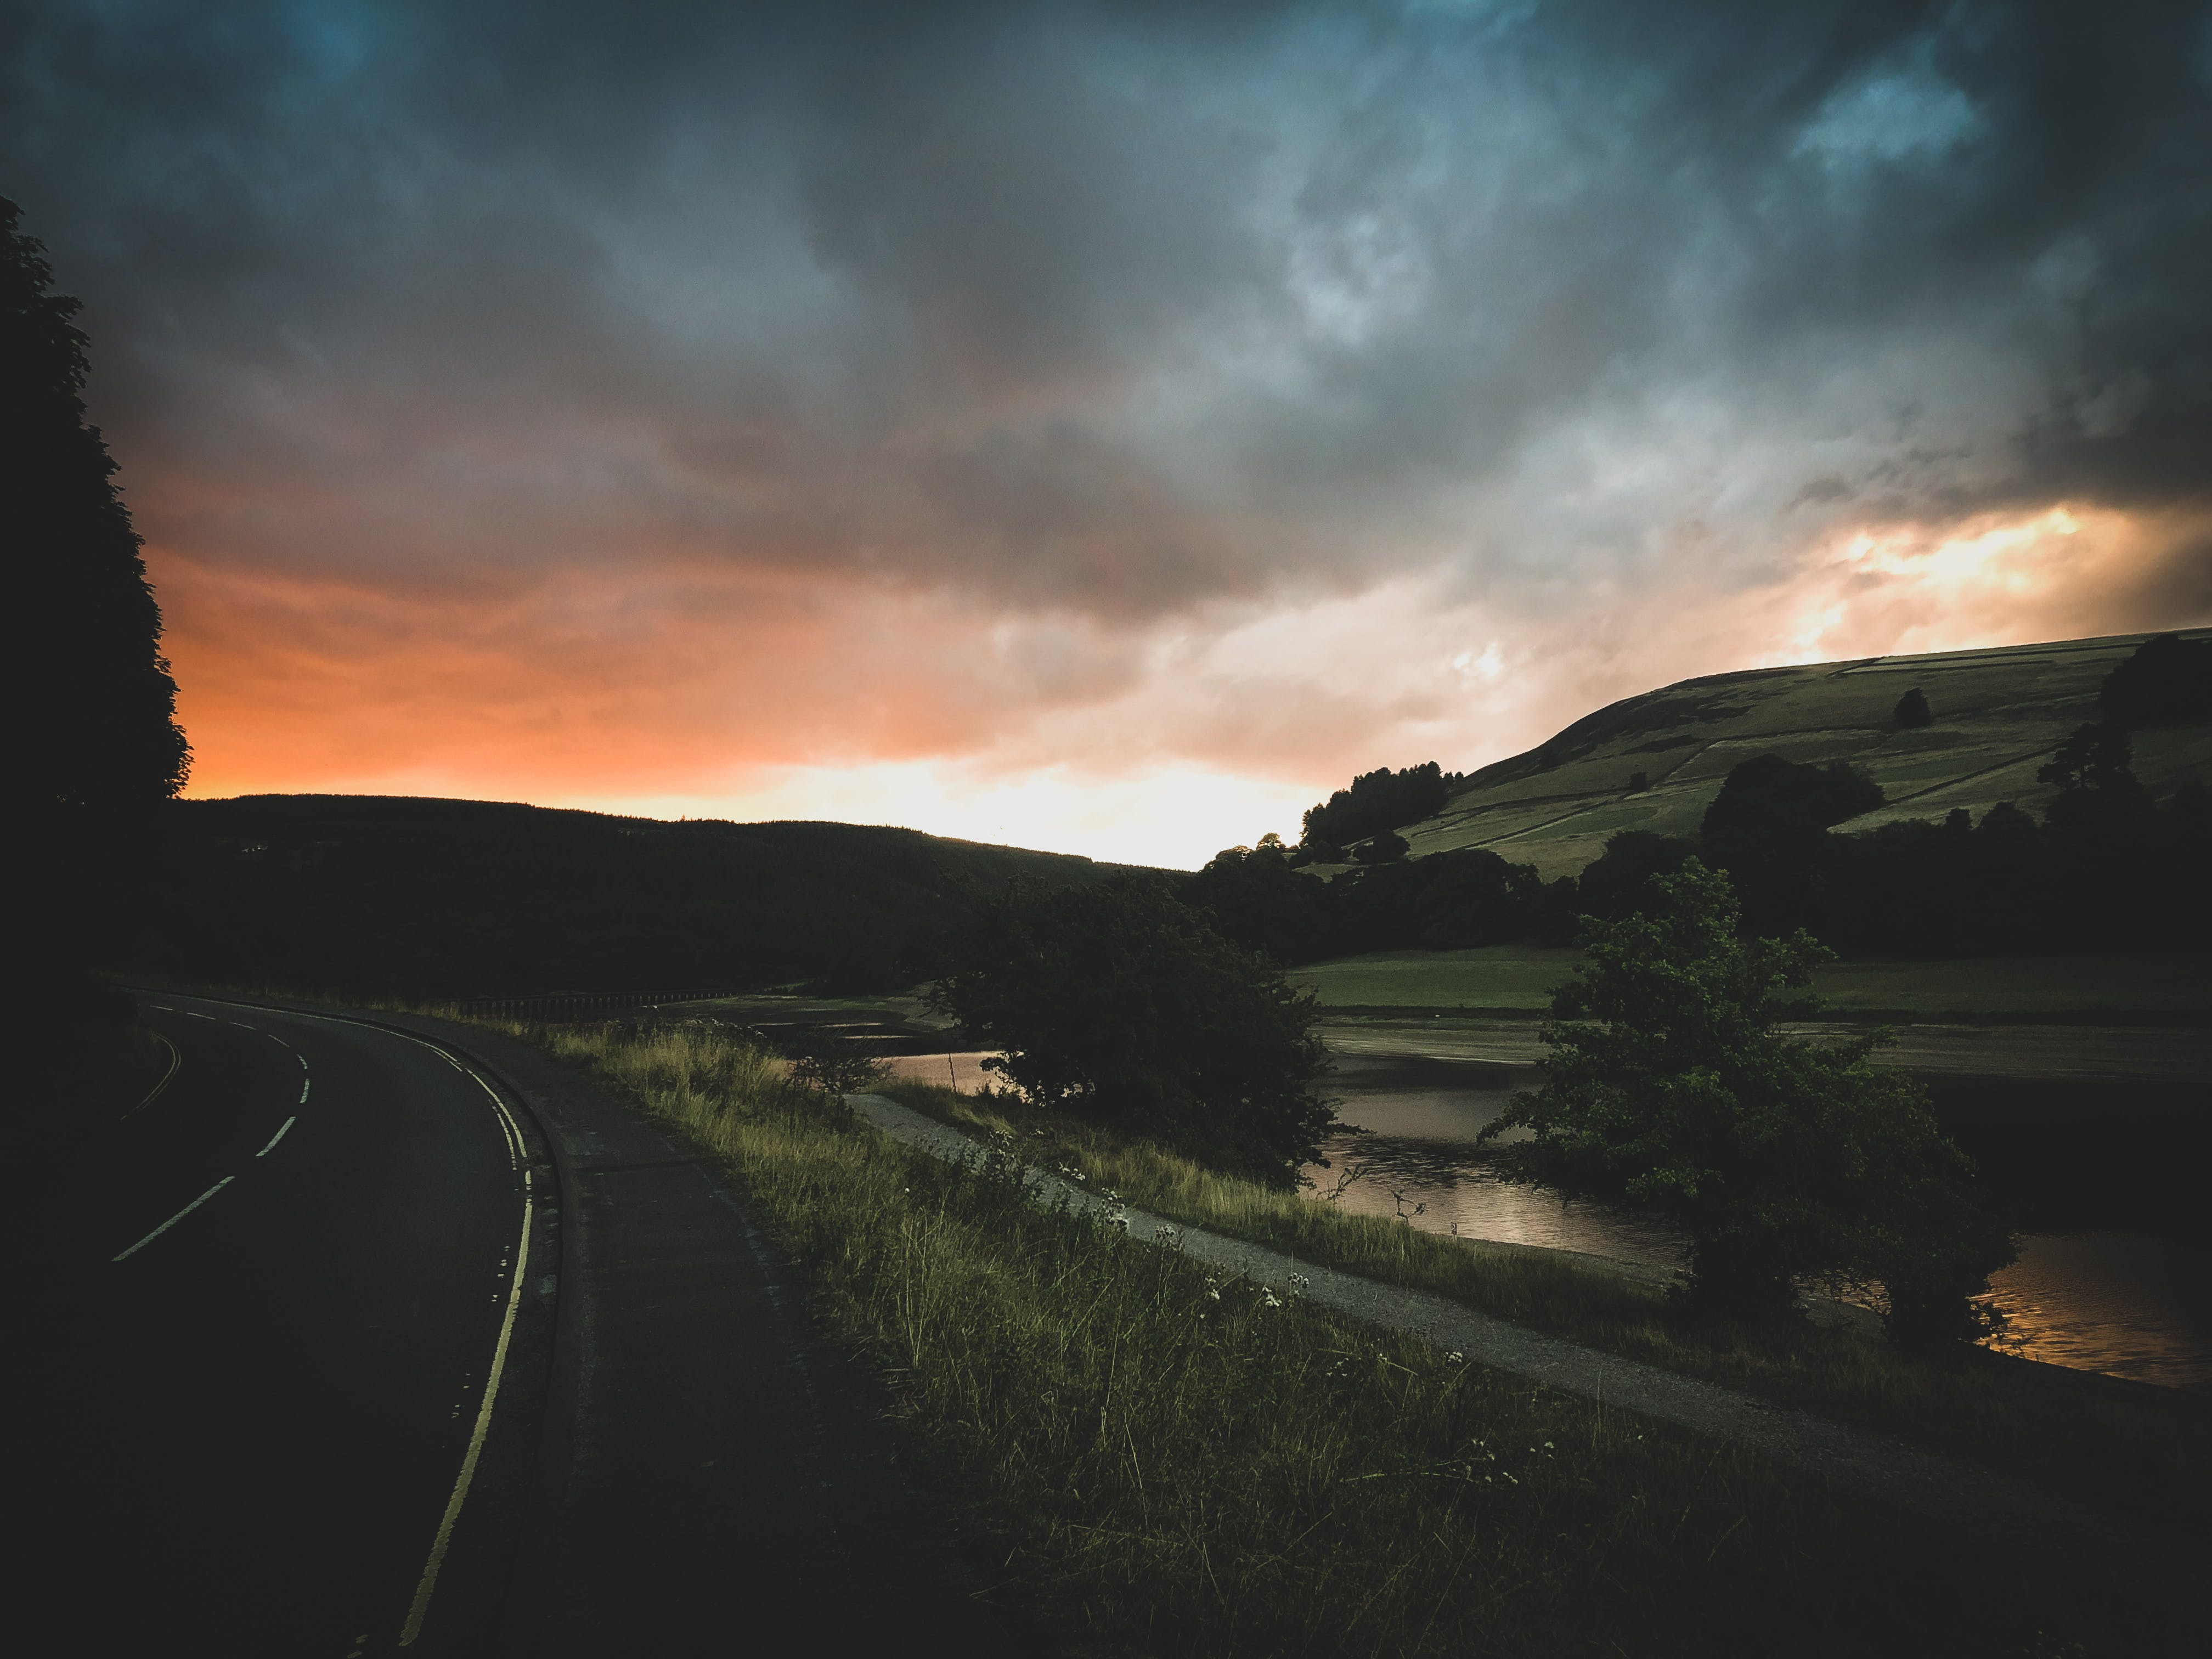 Landscape Photography of Road Beside Body of Water at Golden Hour